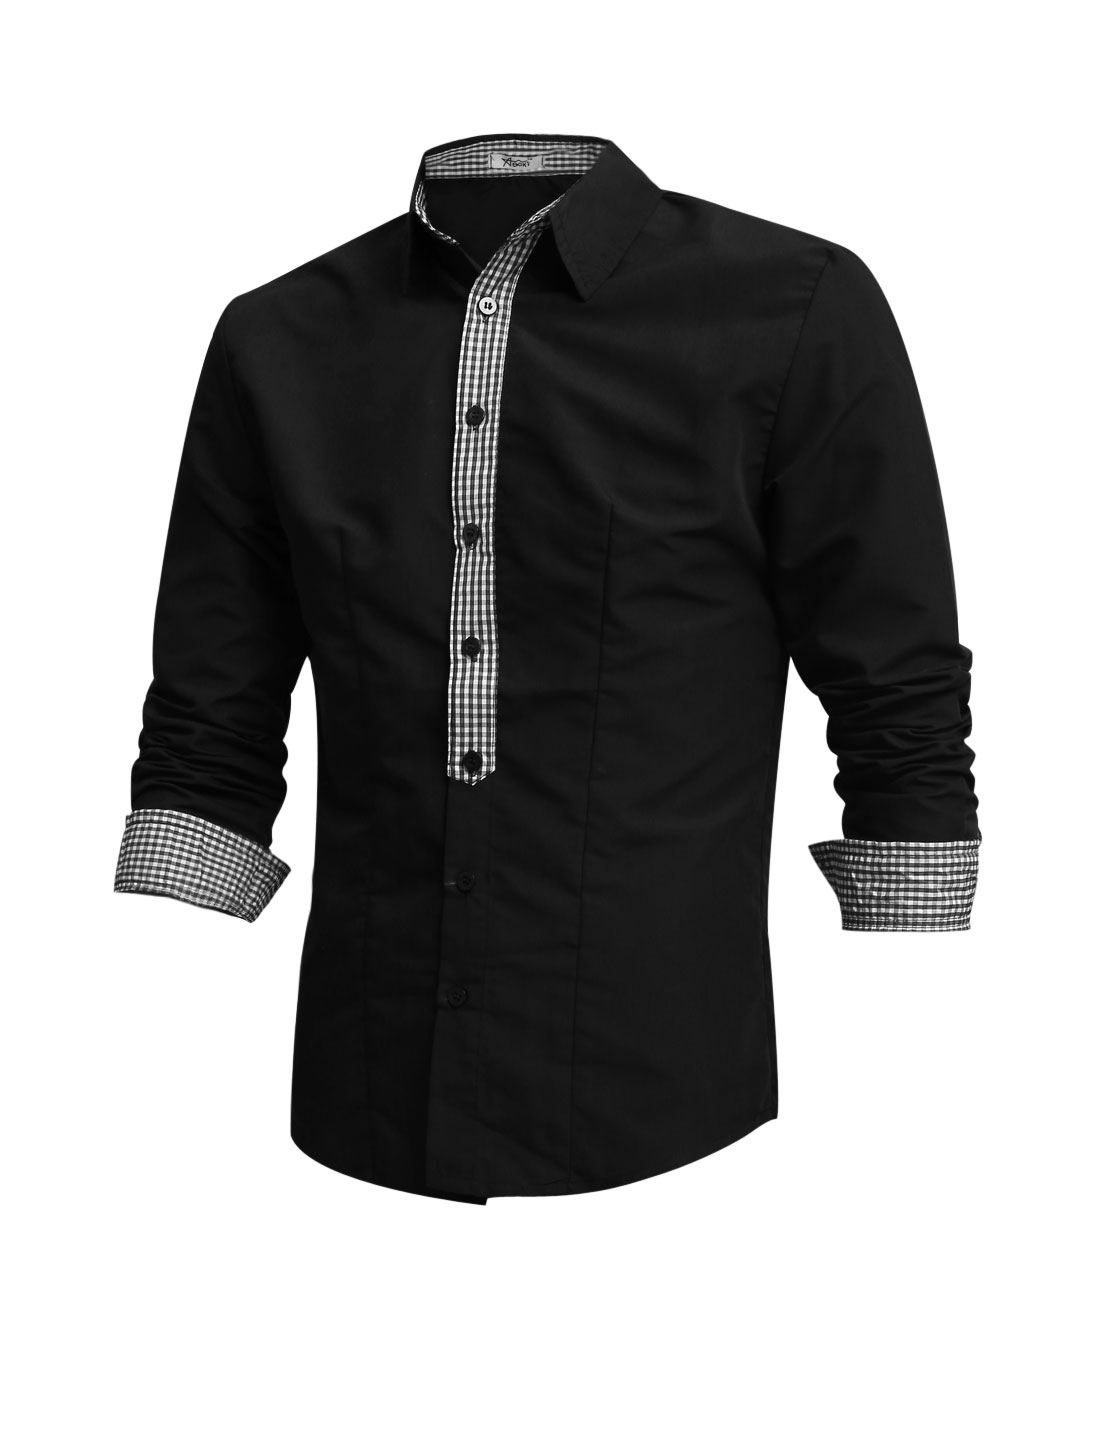 Men Point Collar Single Breasted Plaids Detail Casual Shirt Black M